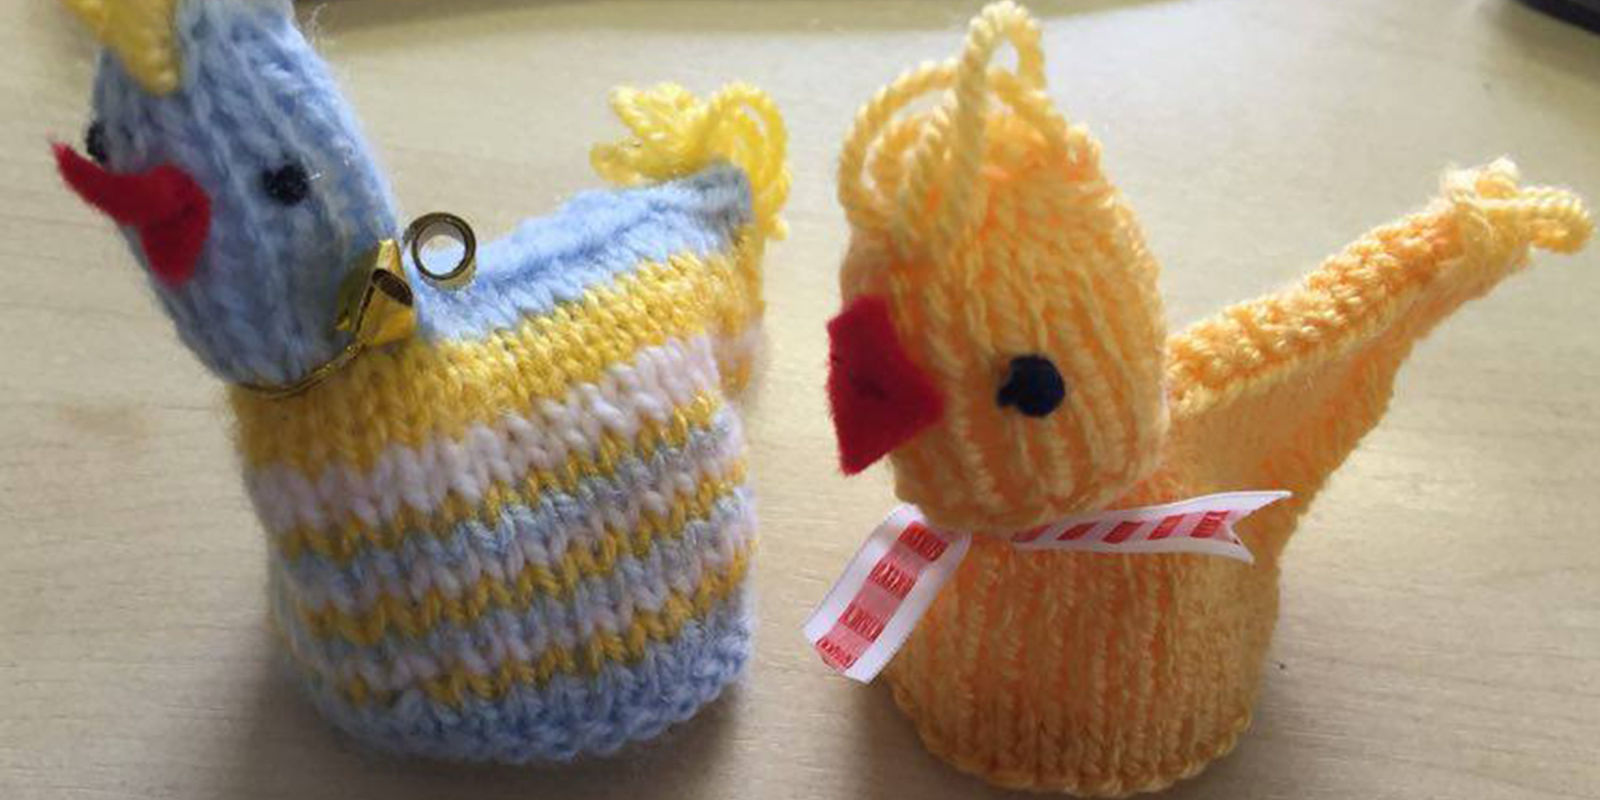 Easter Chick Knitting Pattern Instructions : Free knitting pattern: Easter chick